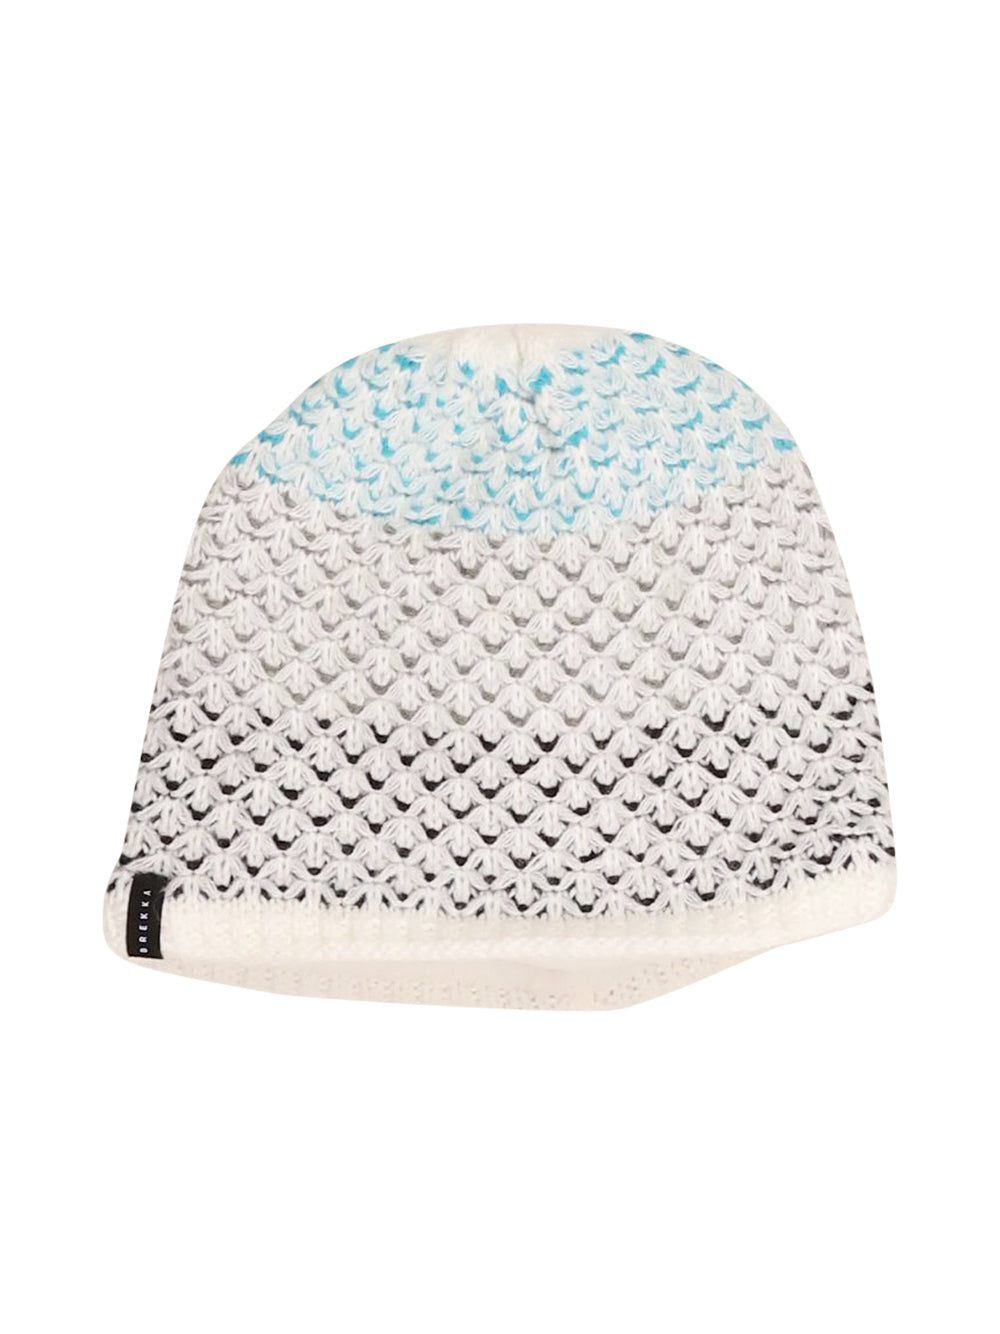 Front photo of Preloved Brekka White Girl's hat - size 4-5 yrs